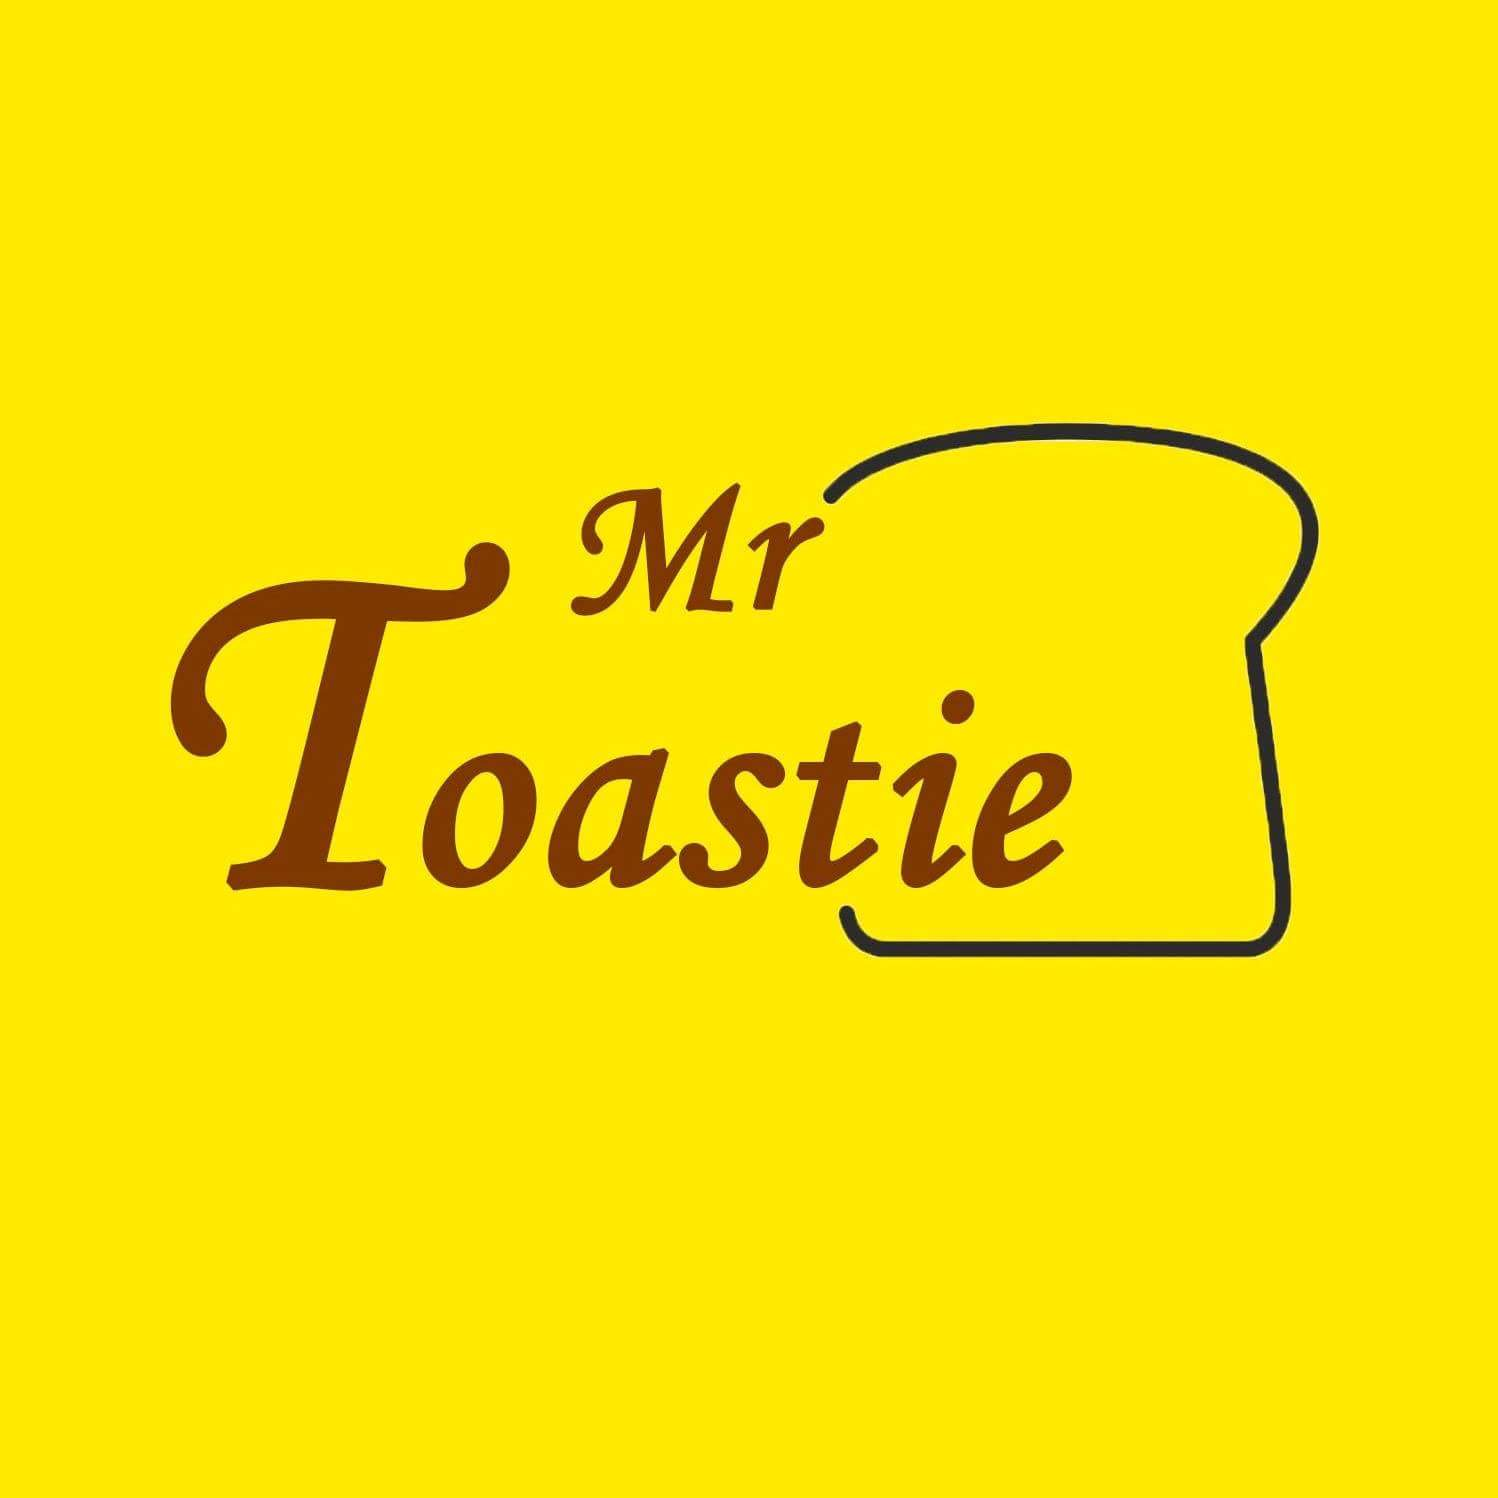 Mr Toastie image